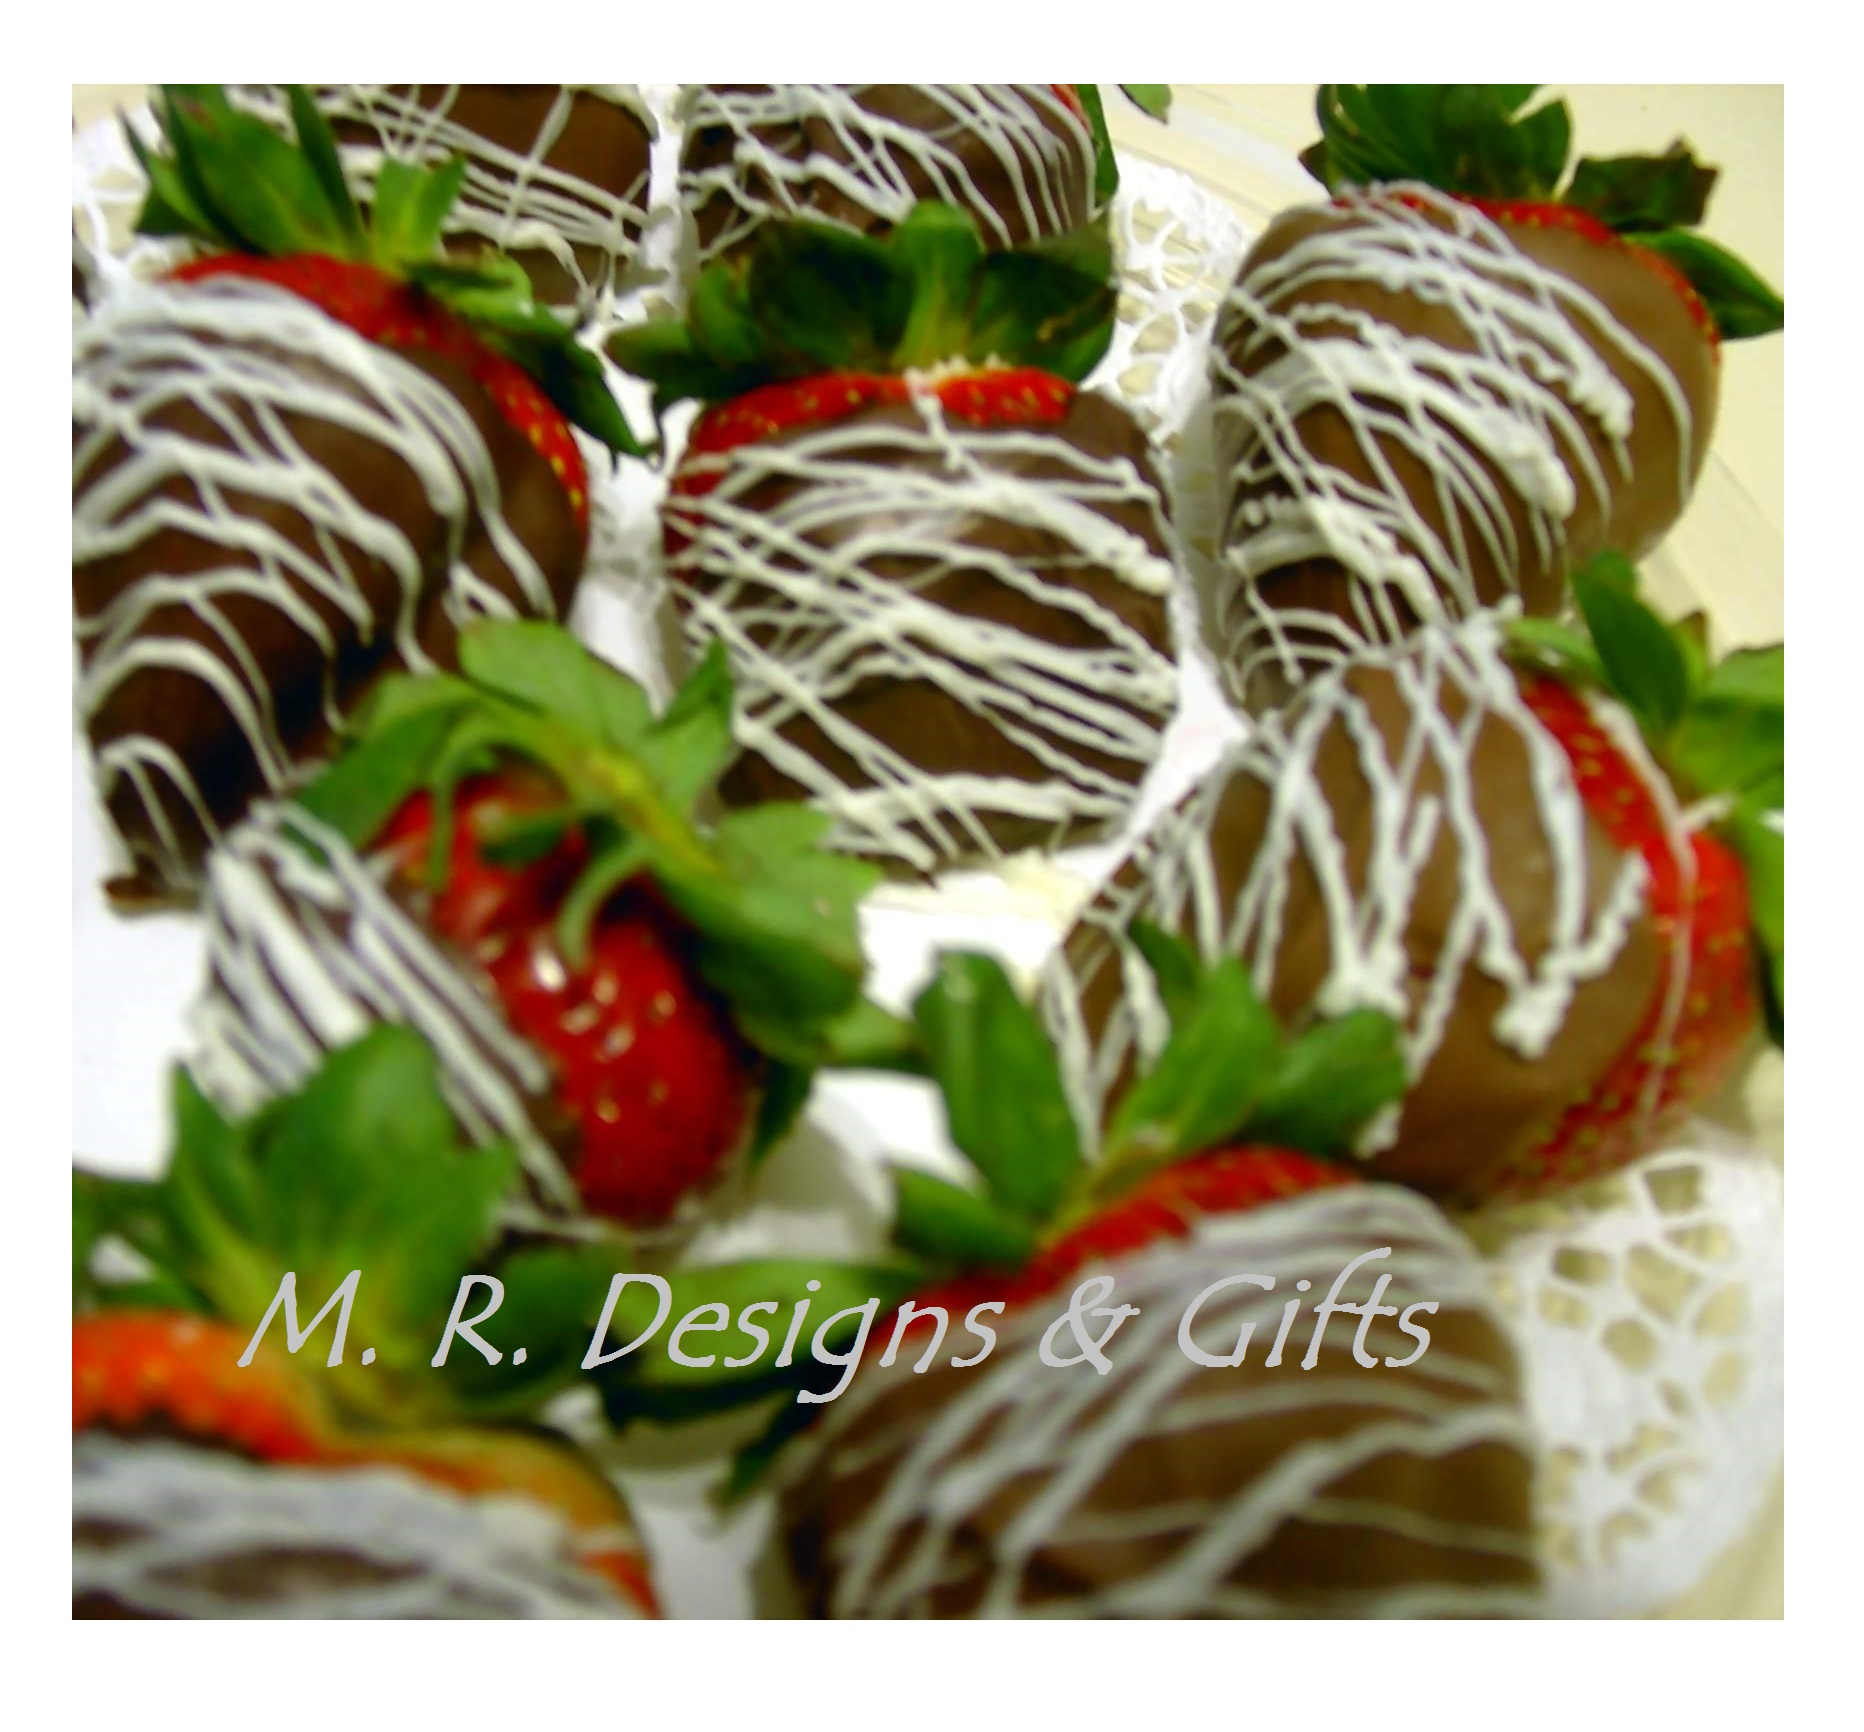 Chocolate Covered Strawberries Delivery Phoenix MetroM.R.Designs ...